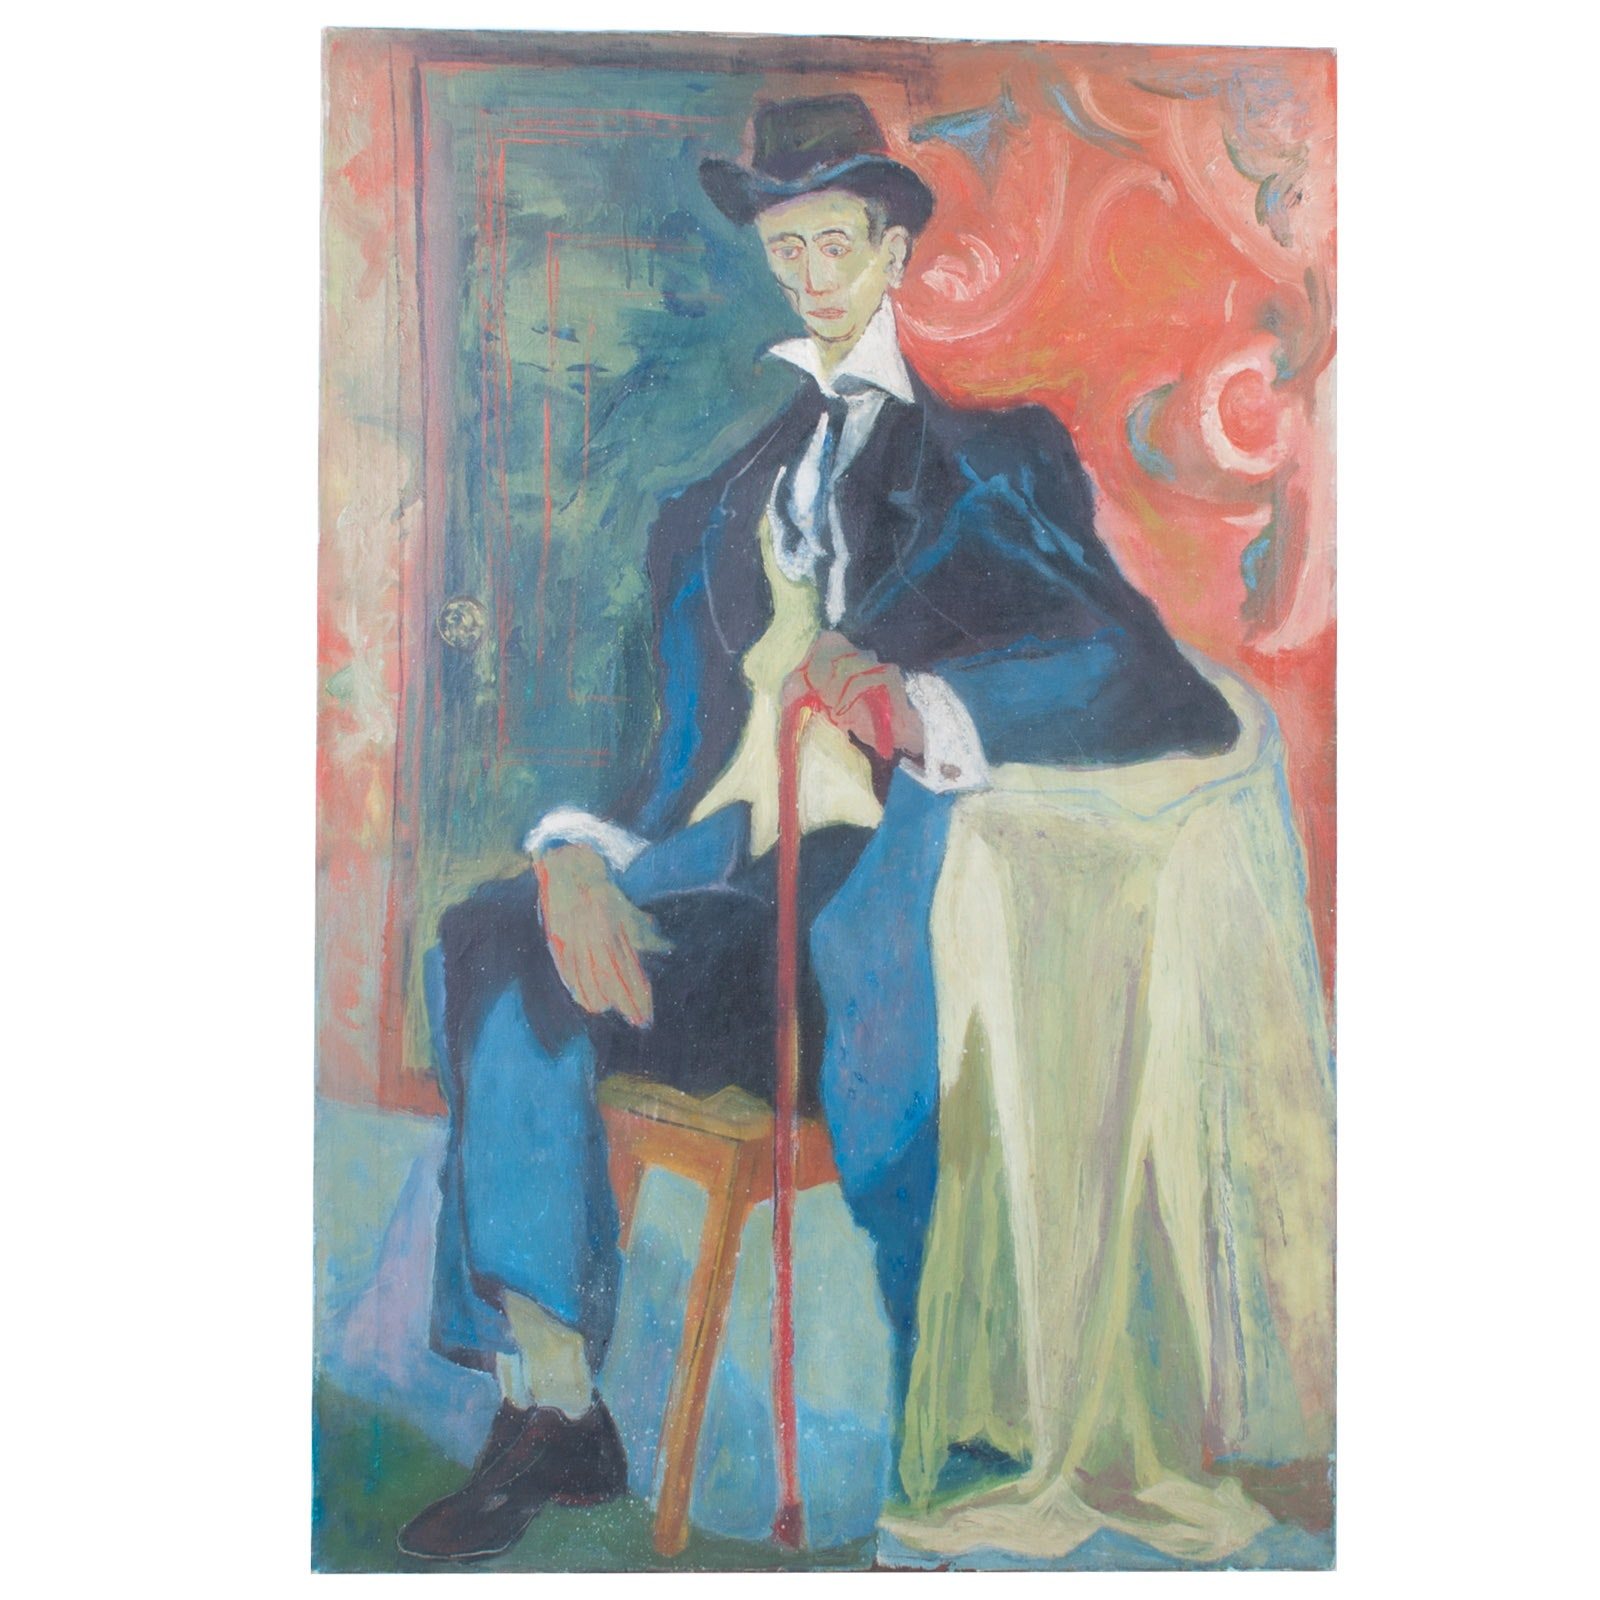 Acrylic on Canvas Abstract Portrait of Sitting Man in Hat